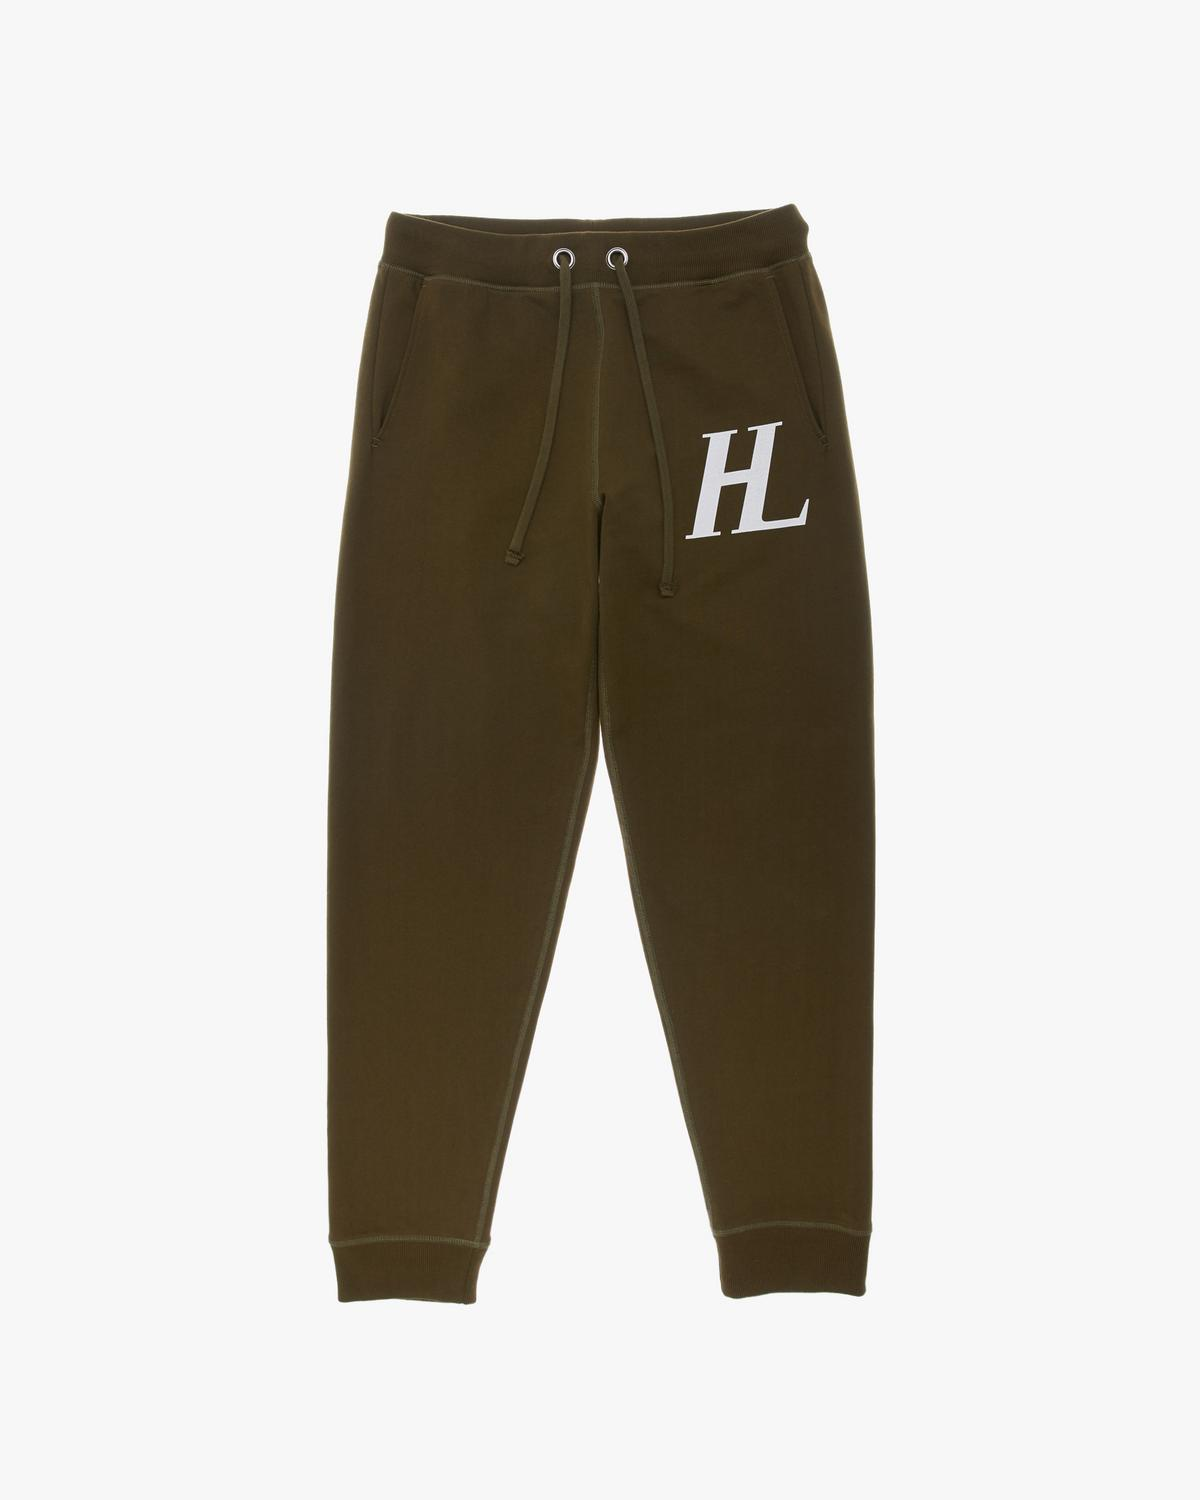 Masc Monogram Sweatpants